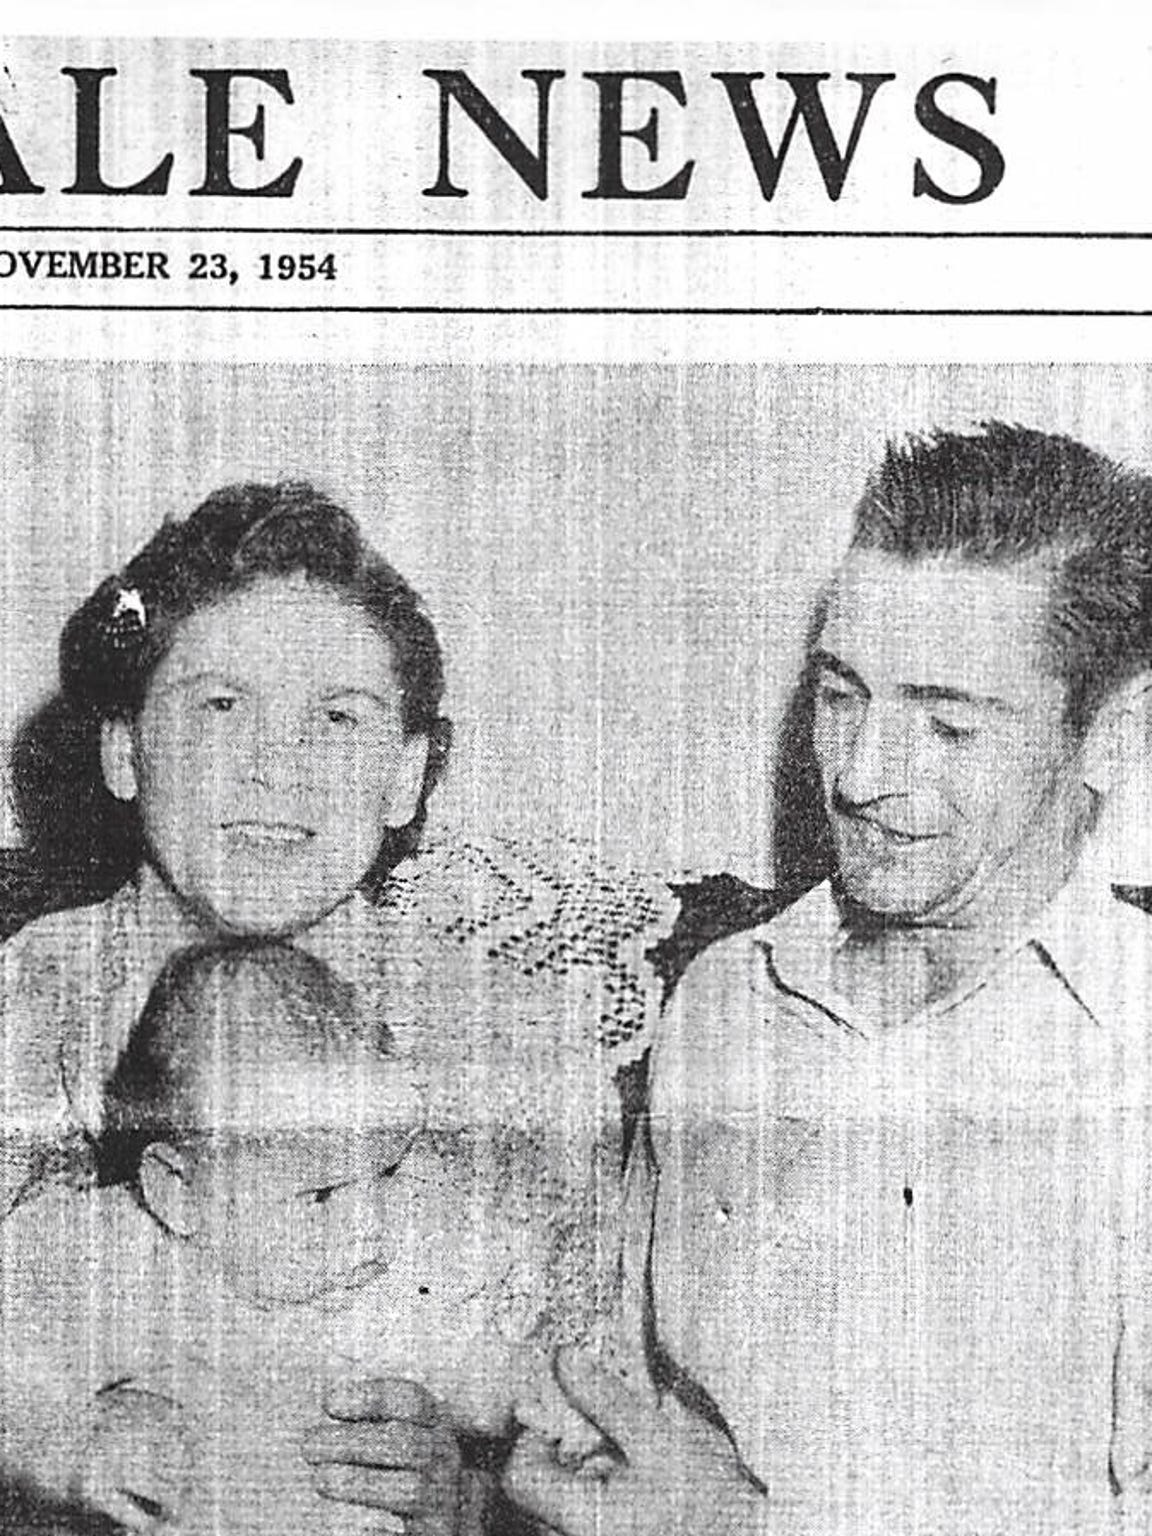 A newspaper story on Nina and her husband from 1954.